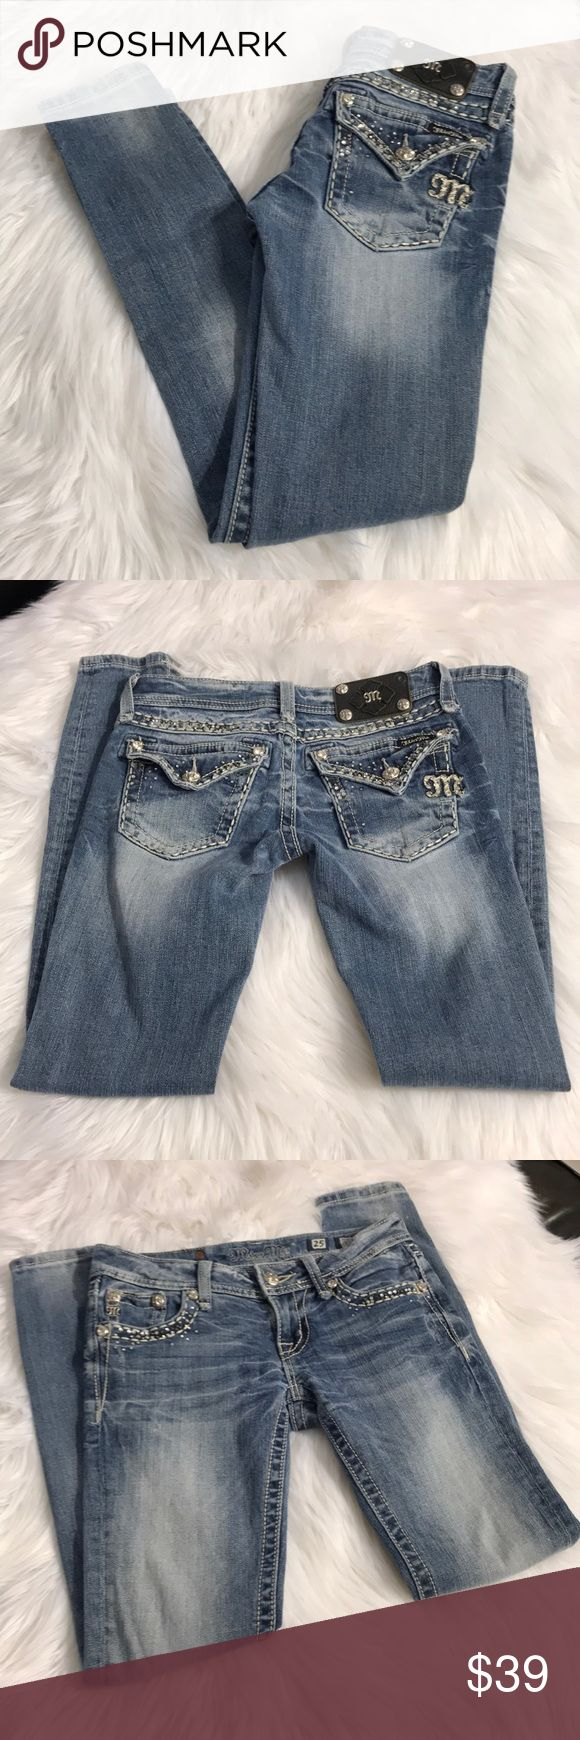 Miss Me Skinny Jeans Great condition Miss Me skinny jeans size 25 inseam 30 Miss Me Jeans Skinny